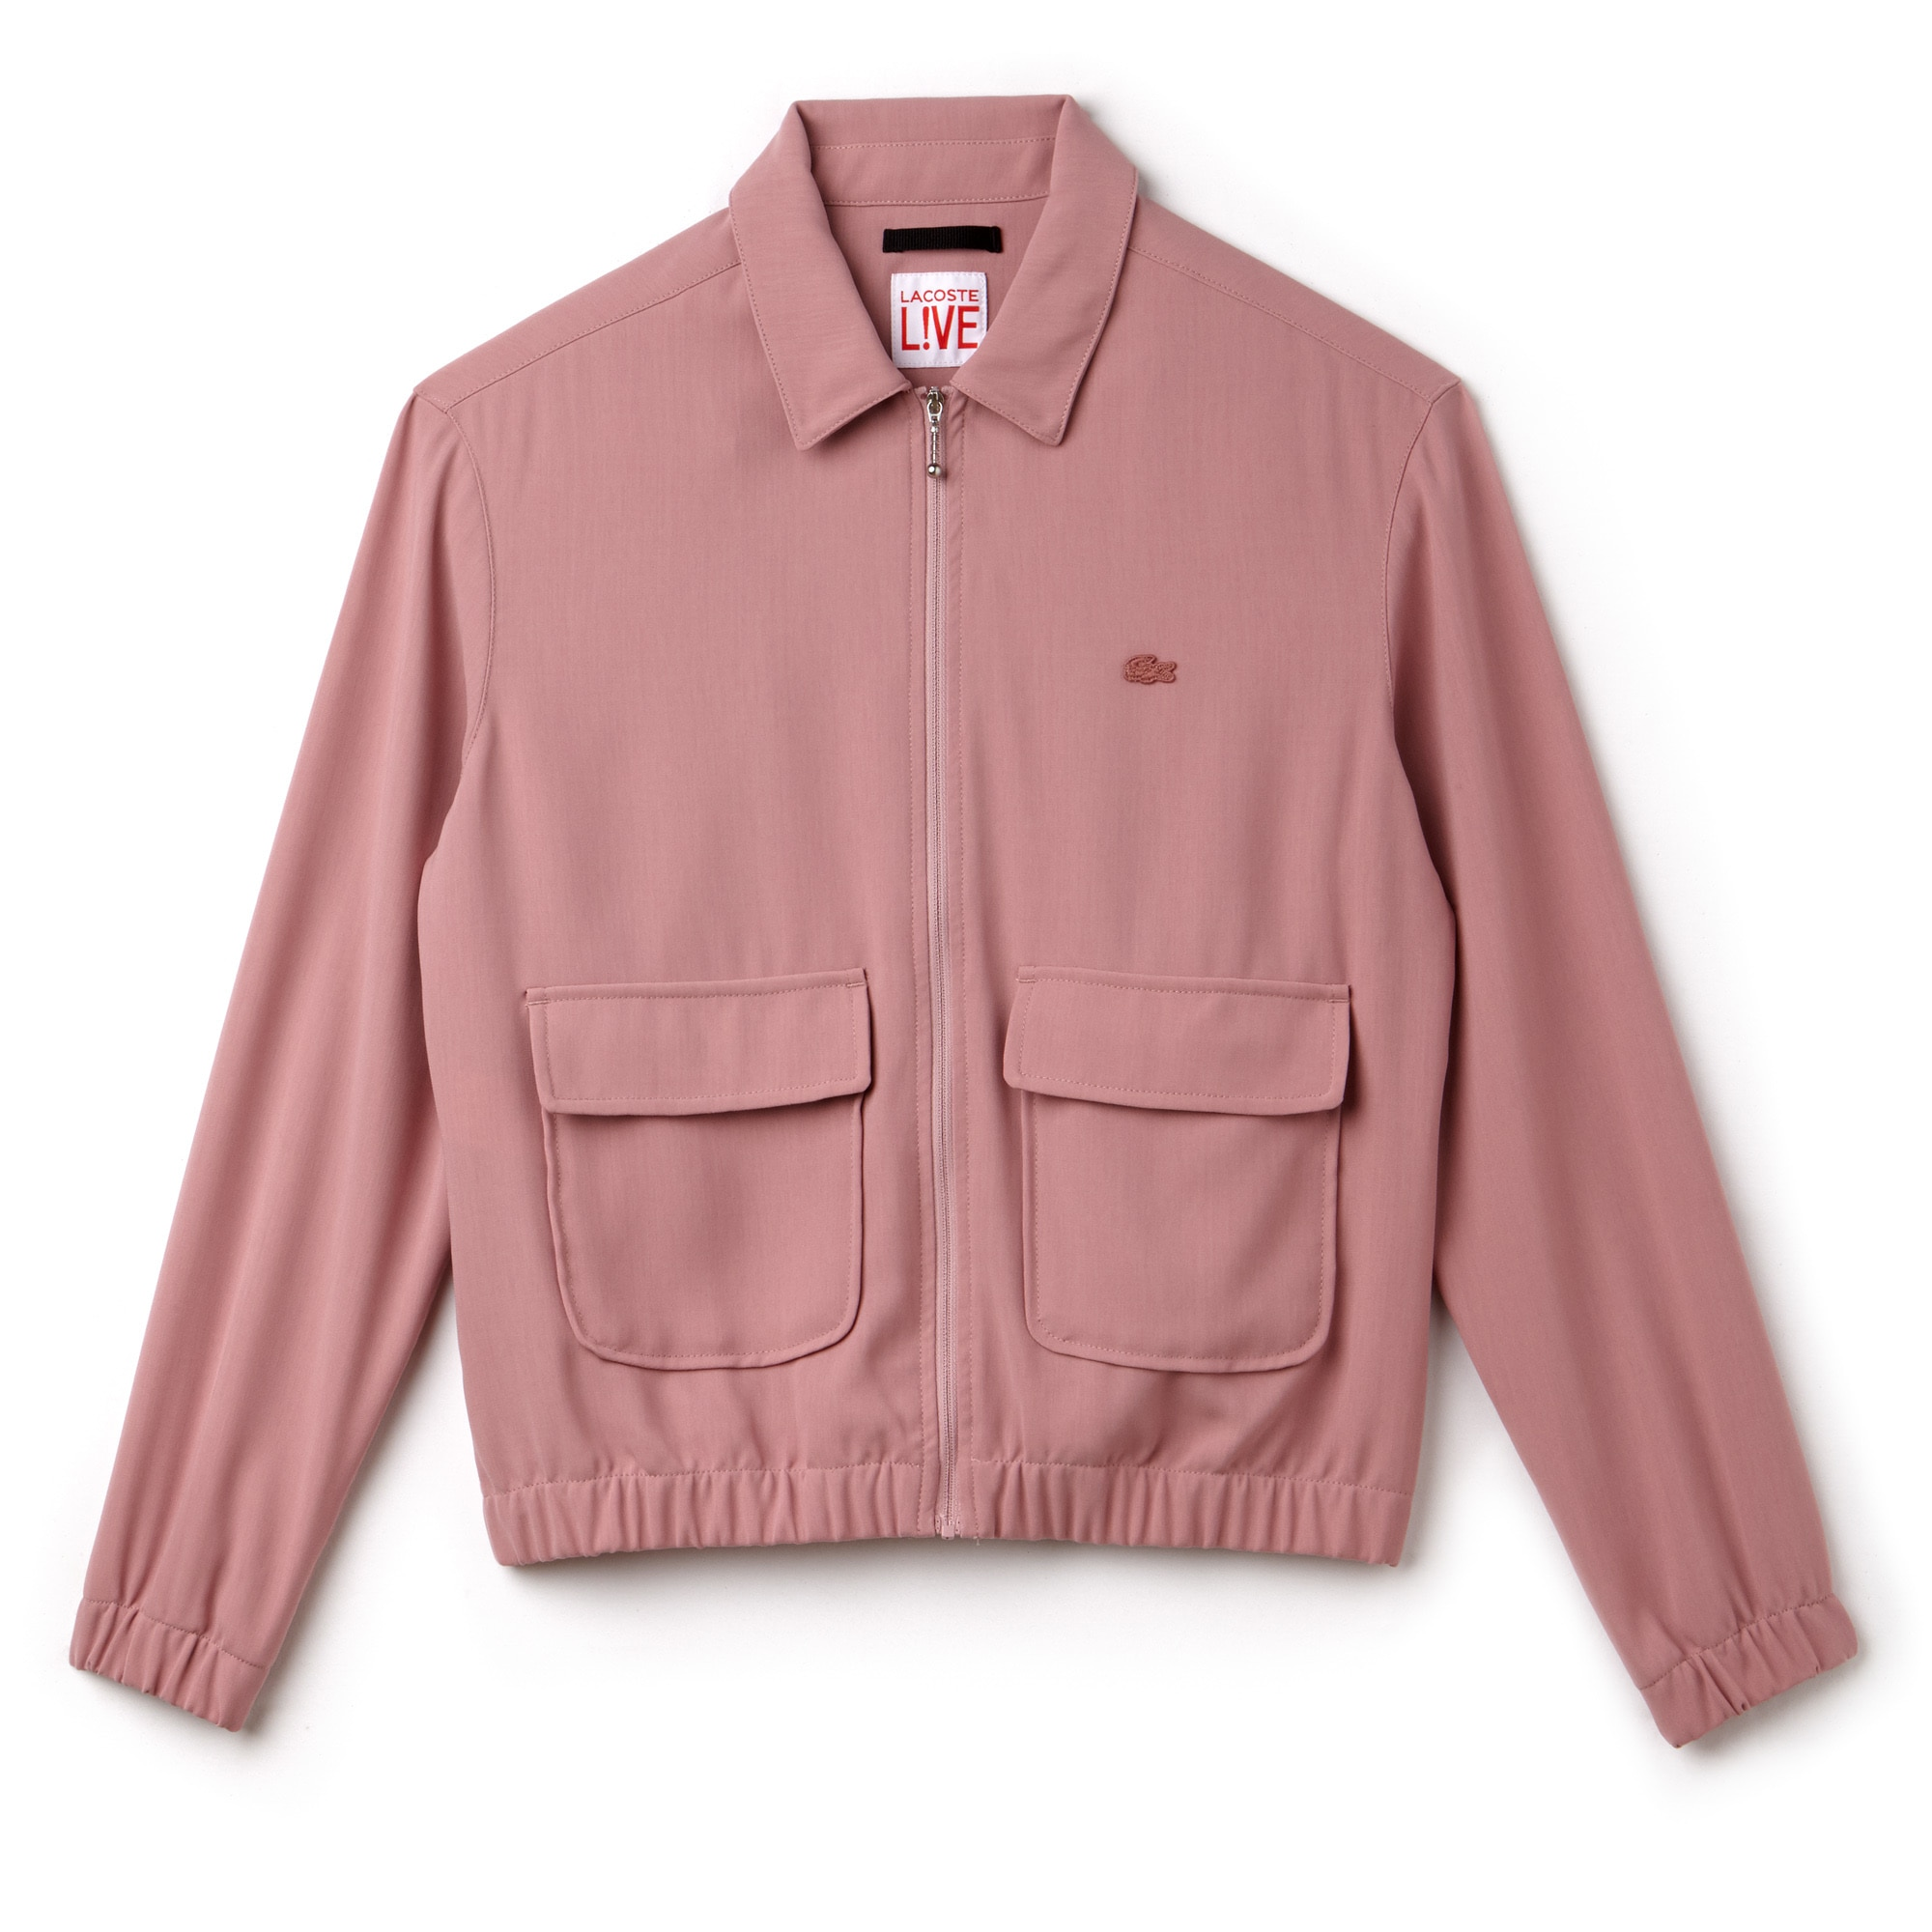 Women's Lacoste LIVE Crepe Short Zip Jacket